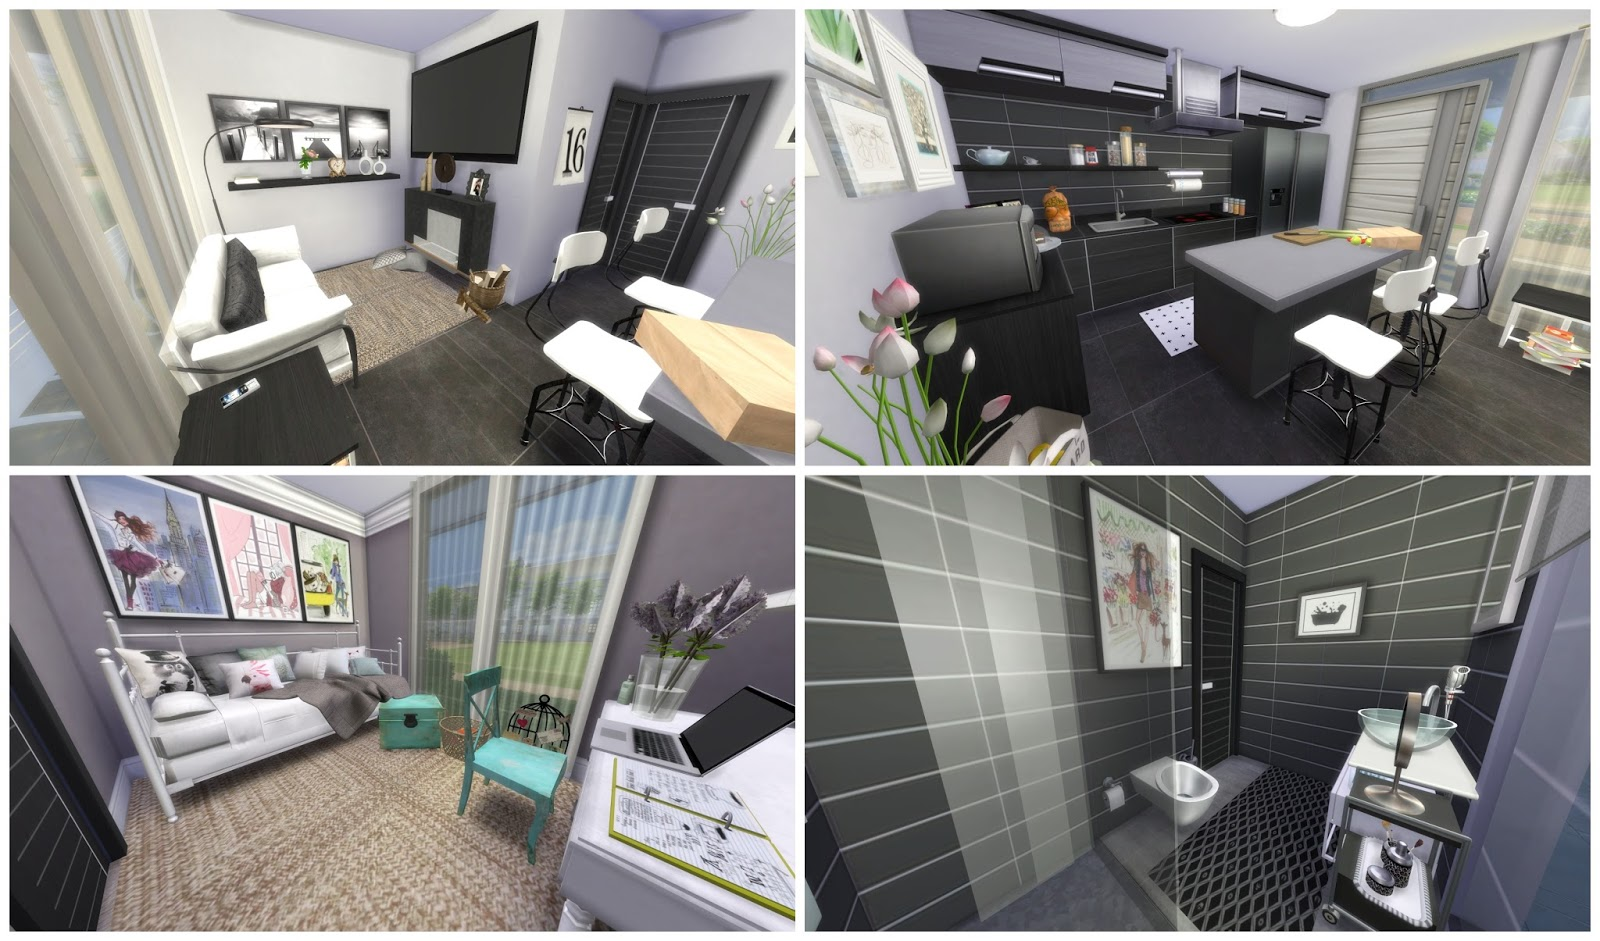 Sims 4 Small Modern House Dinha